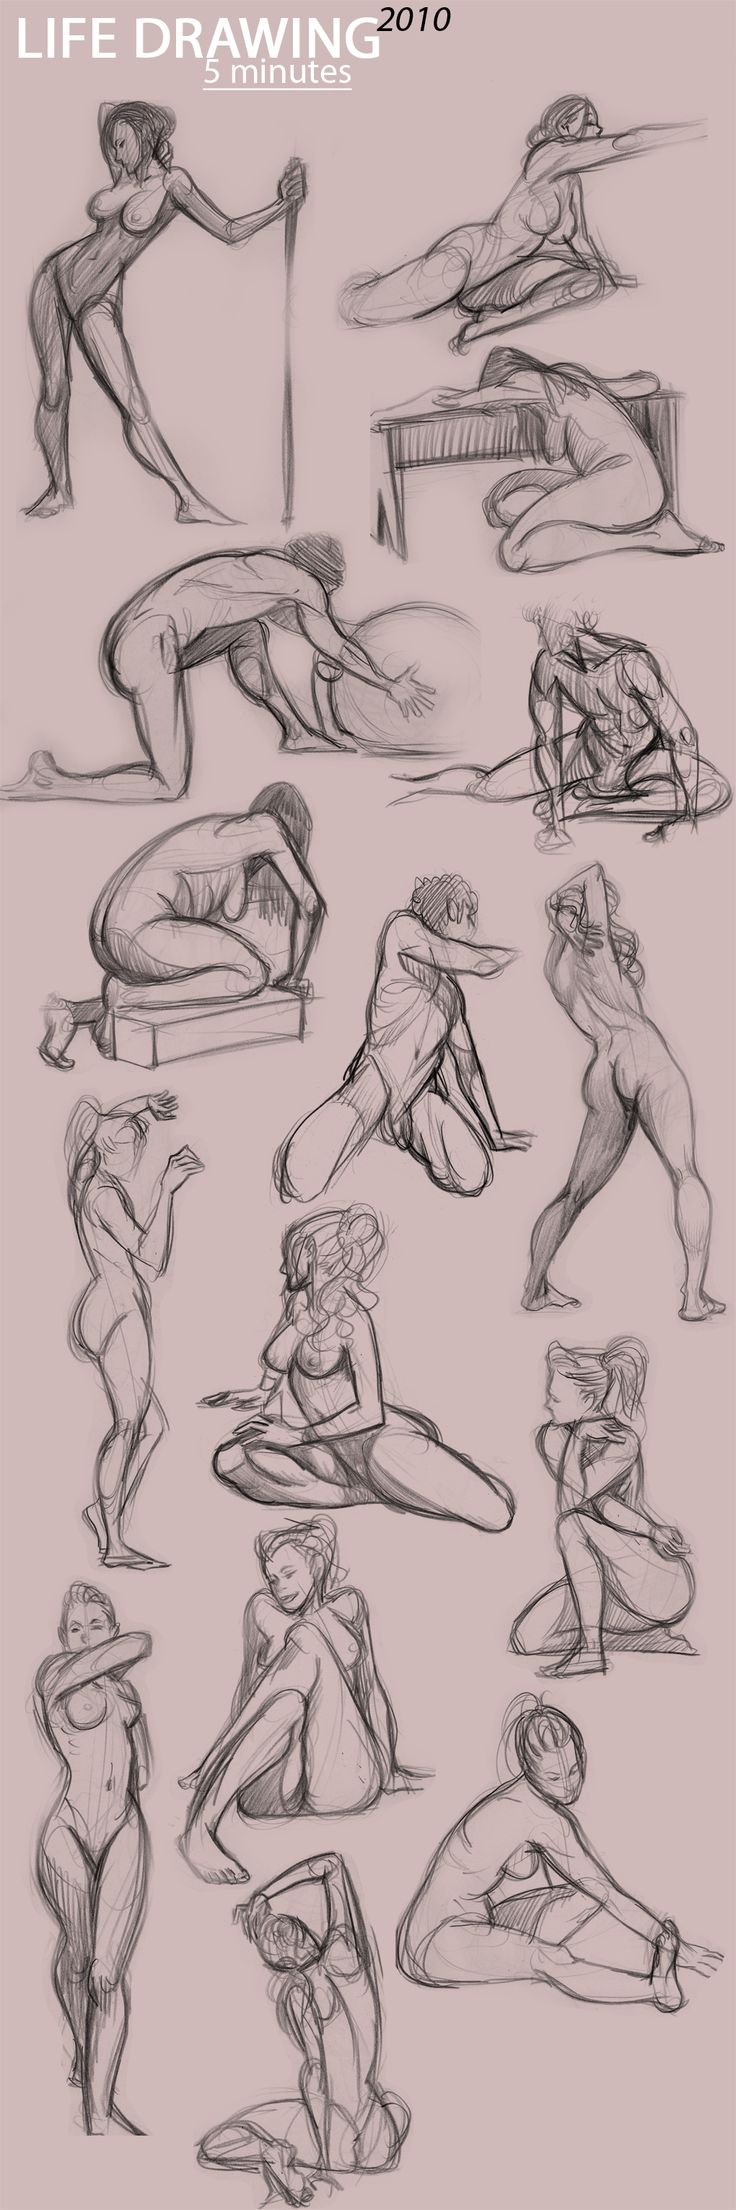 life drawing, anatomy, poses ✤ || CHARACTER DESIGN REFERENCES | キャラクターデザイン |